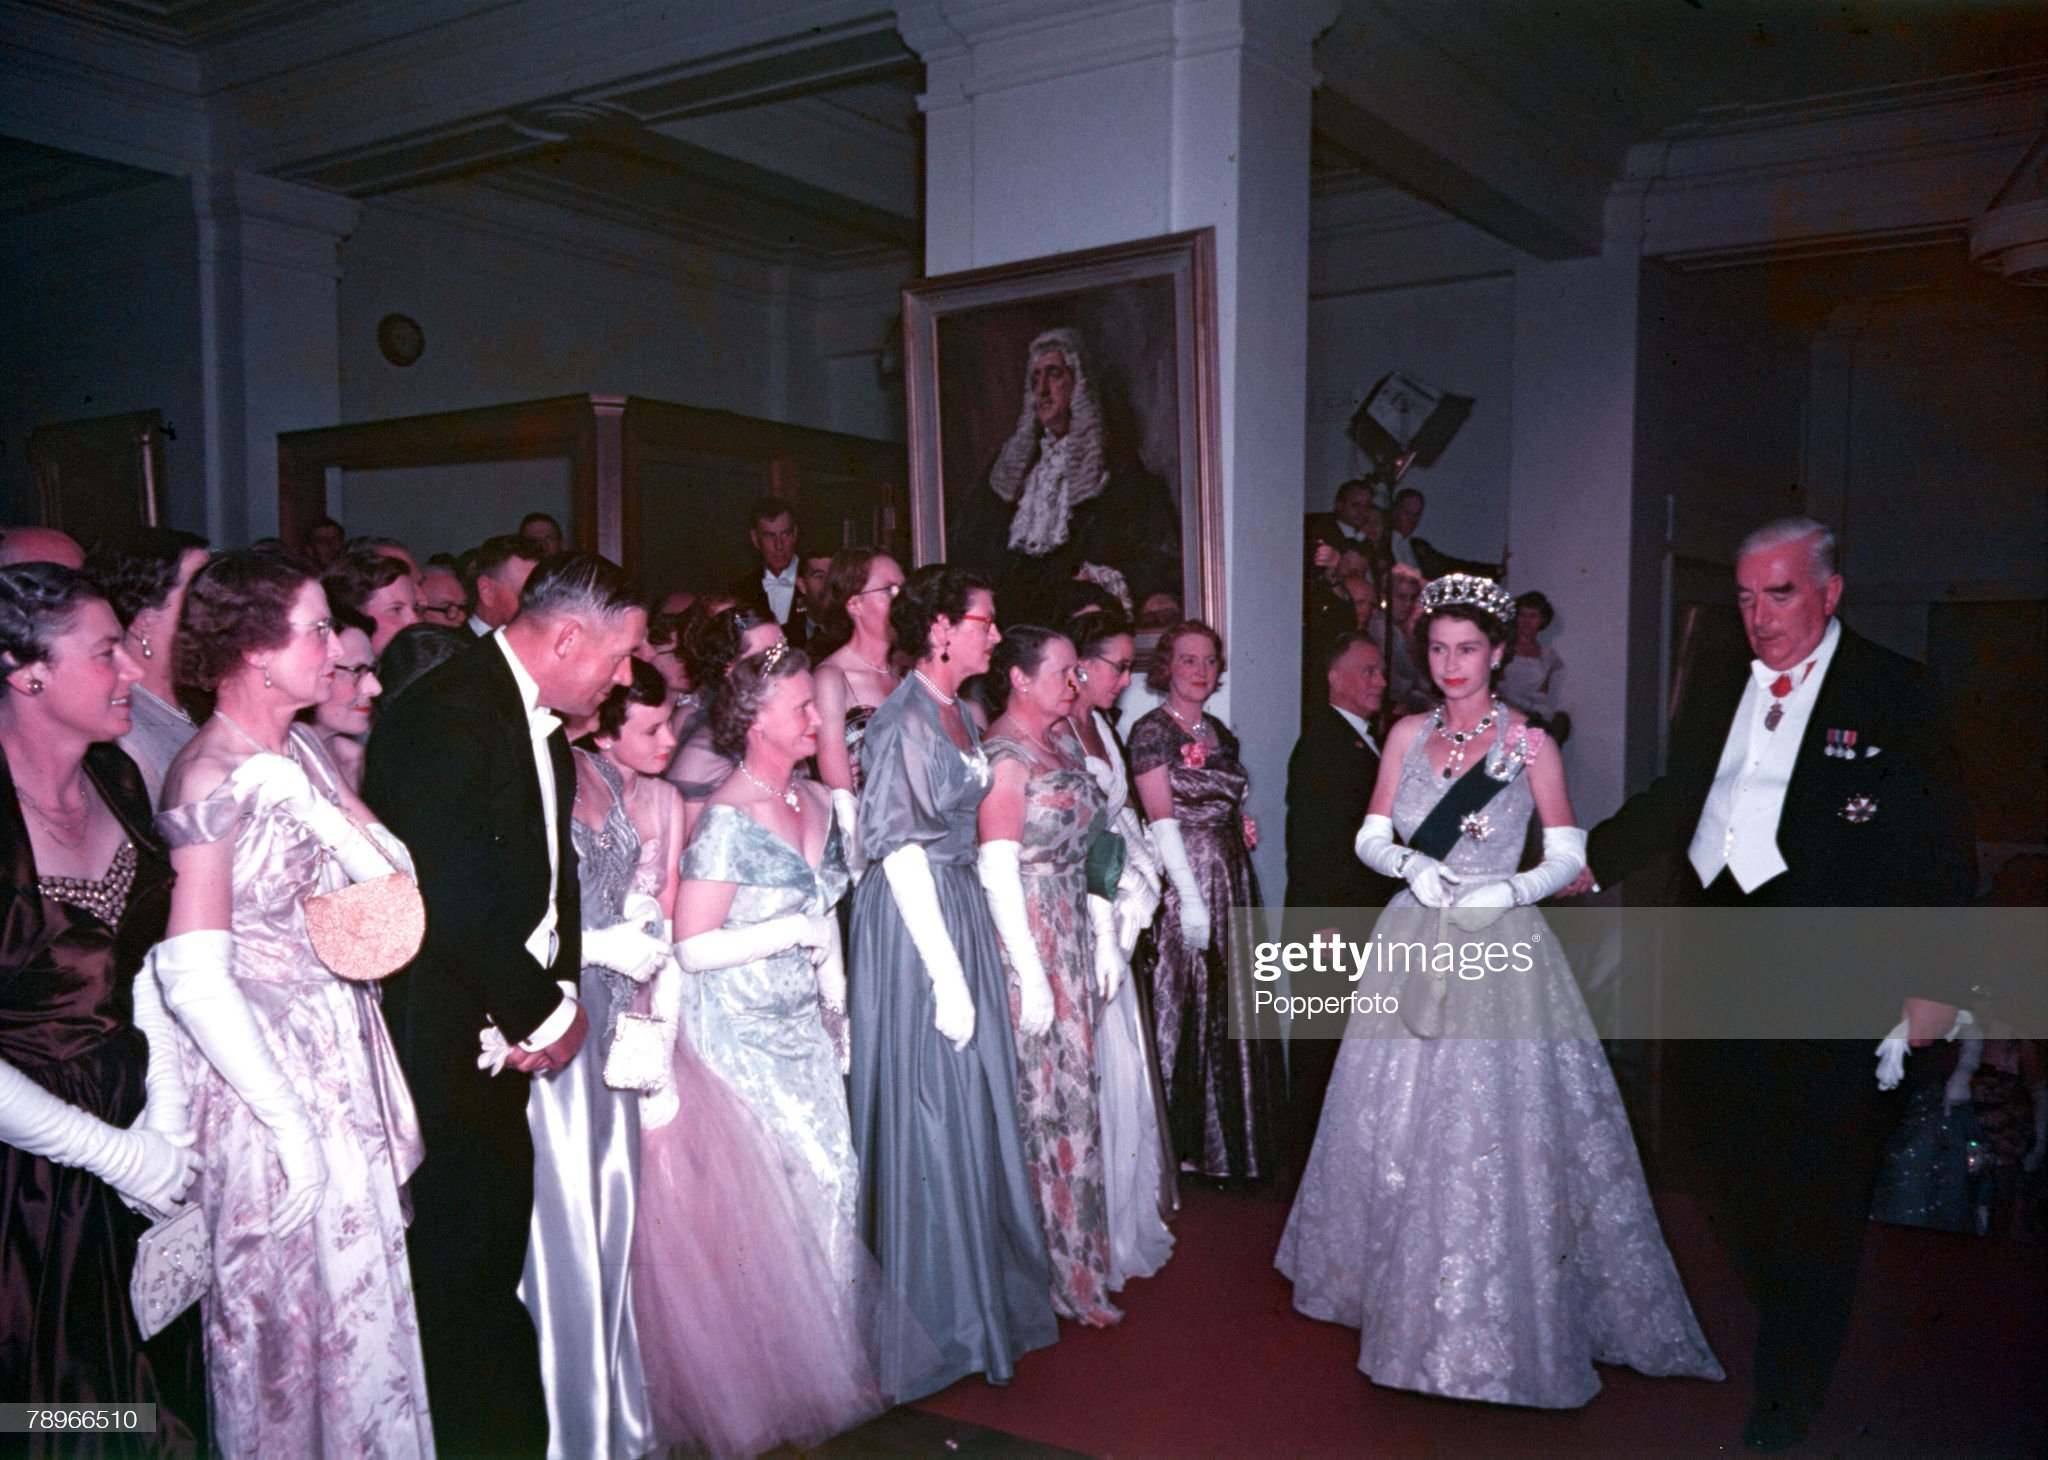 1954. Royal Tour of Australia. Queen Elizabeth II is pictured accompanied by Prime Minister Mr Menzies as she passes lines of guests at the State Ball held at Parliament House. : News Photo